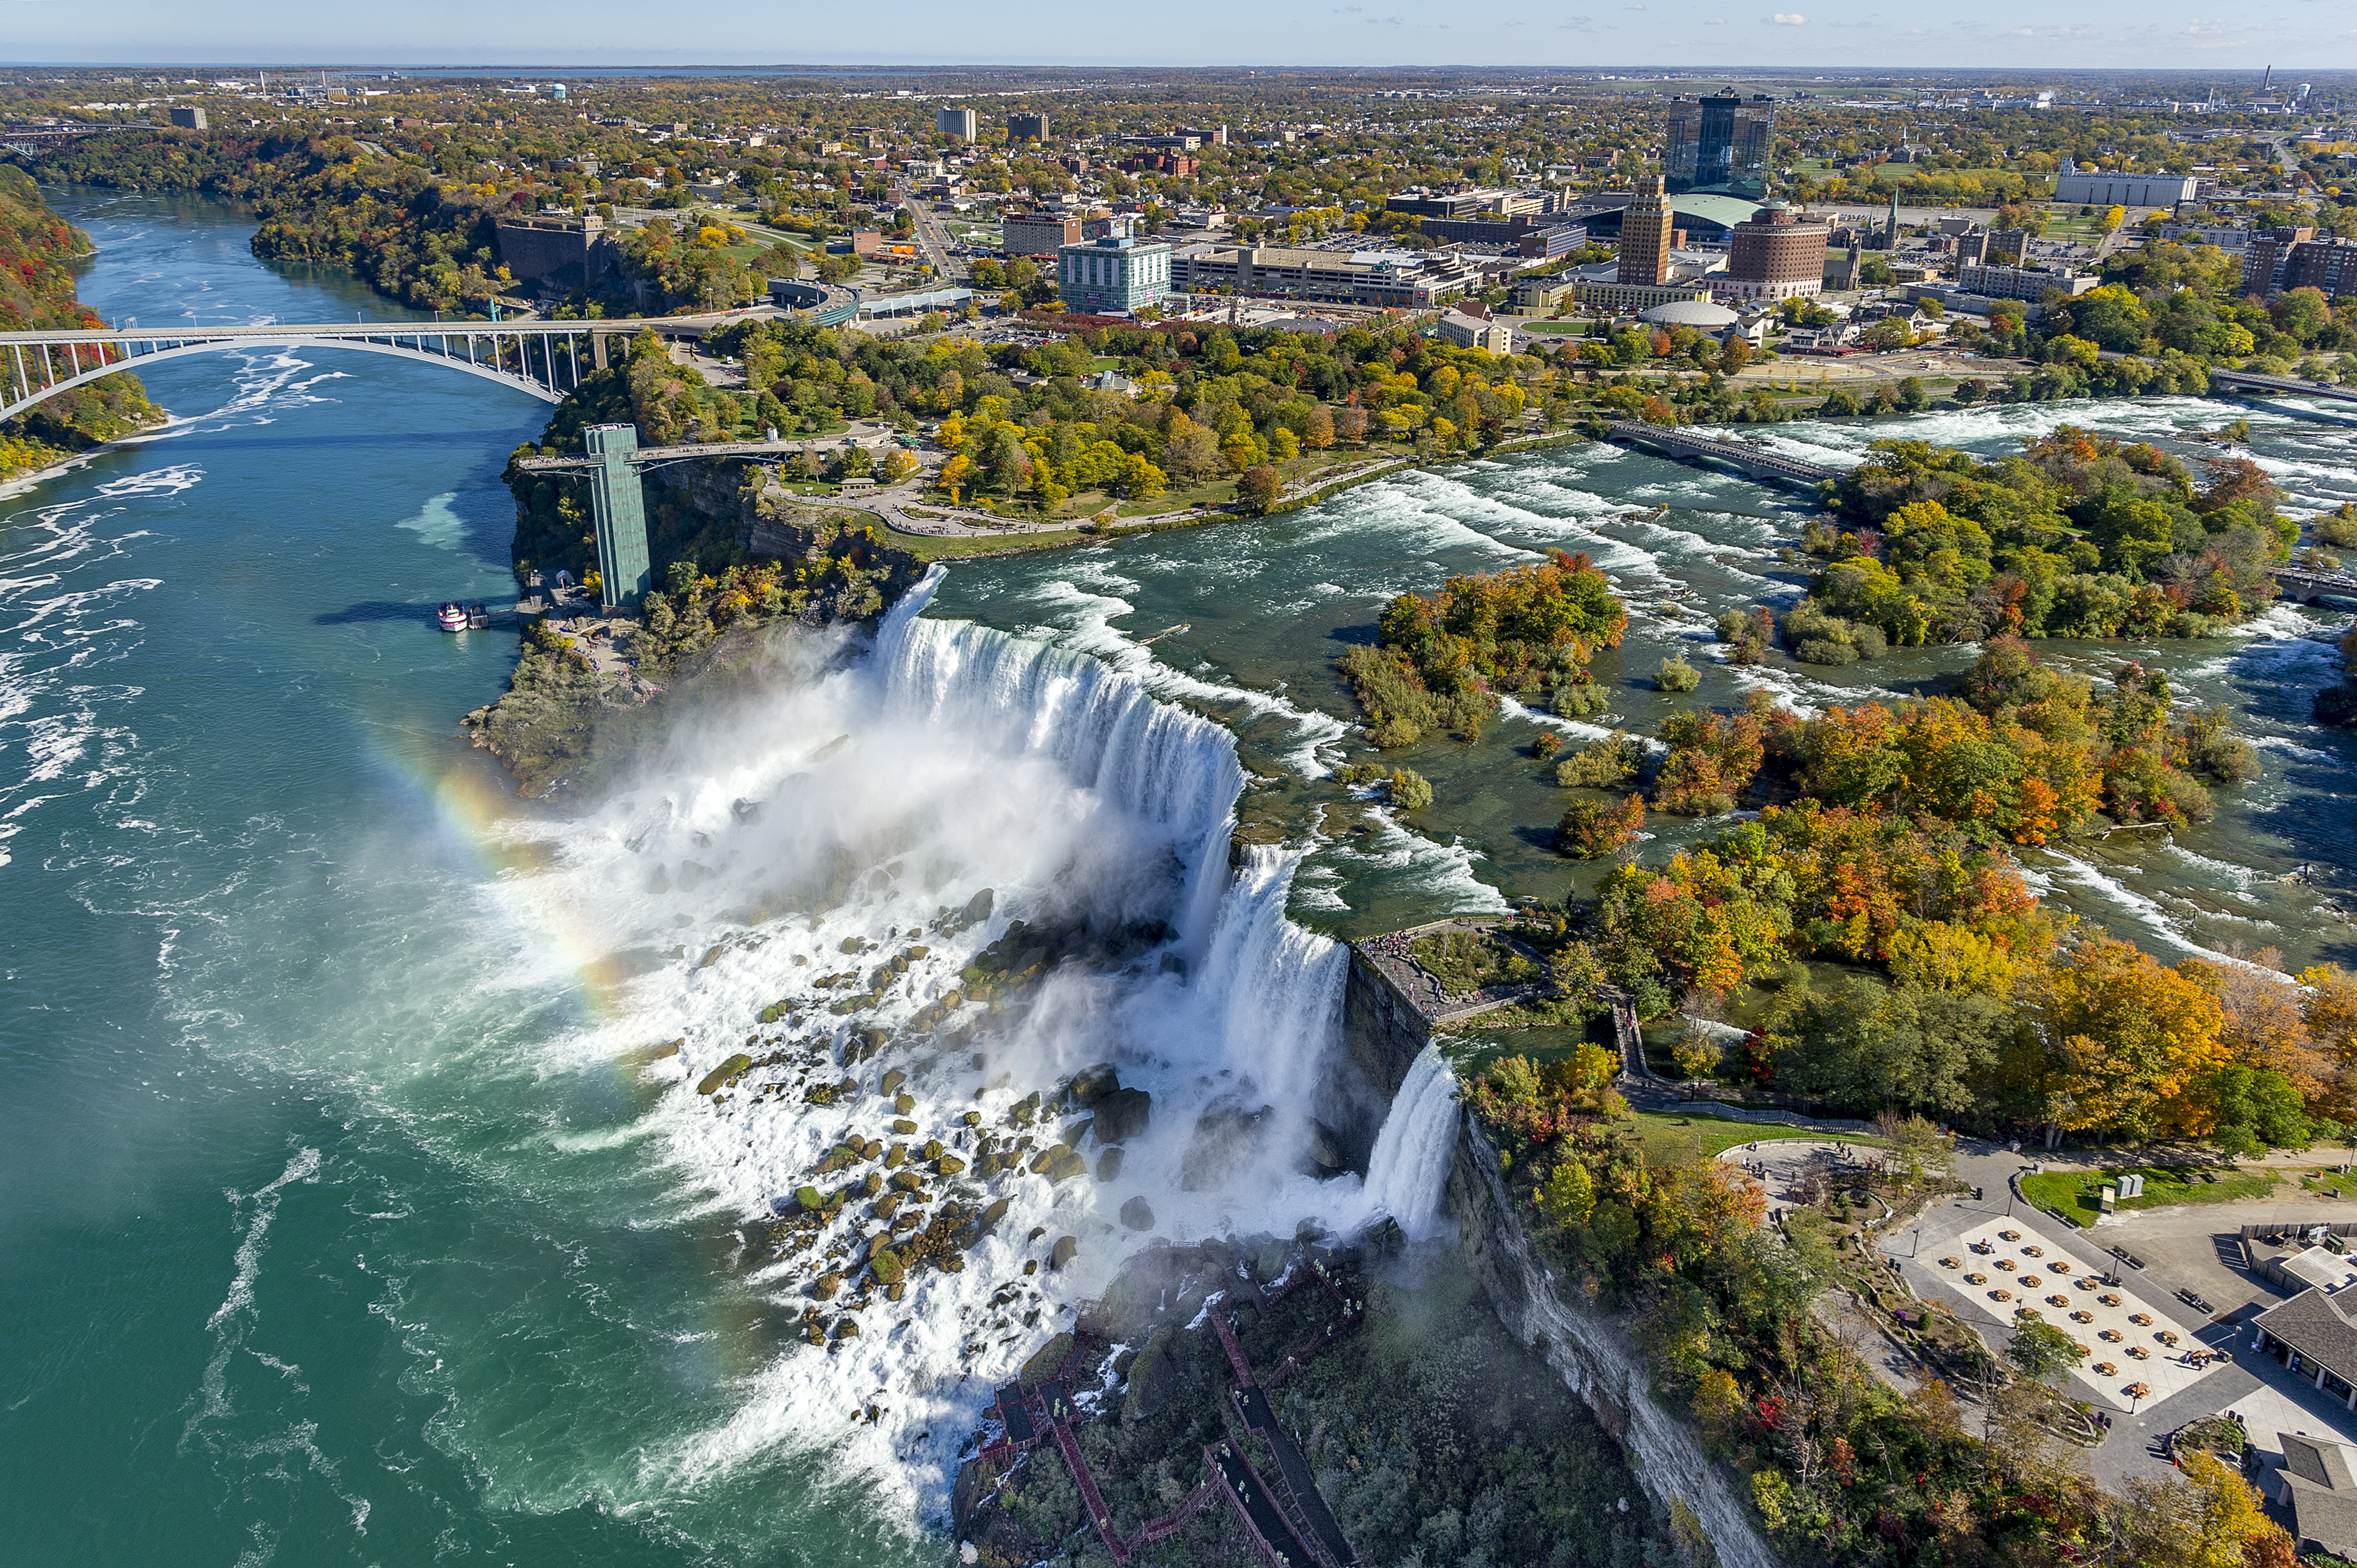 Pictures of hotels in or near Niagara Falls Take a]